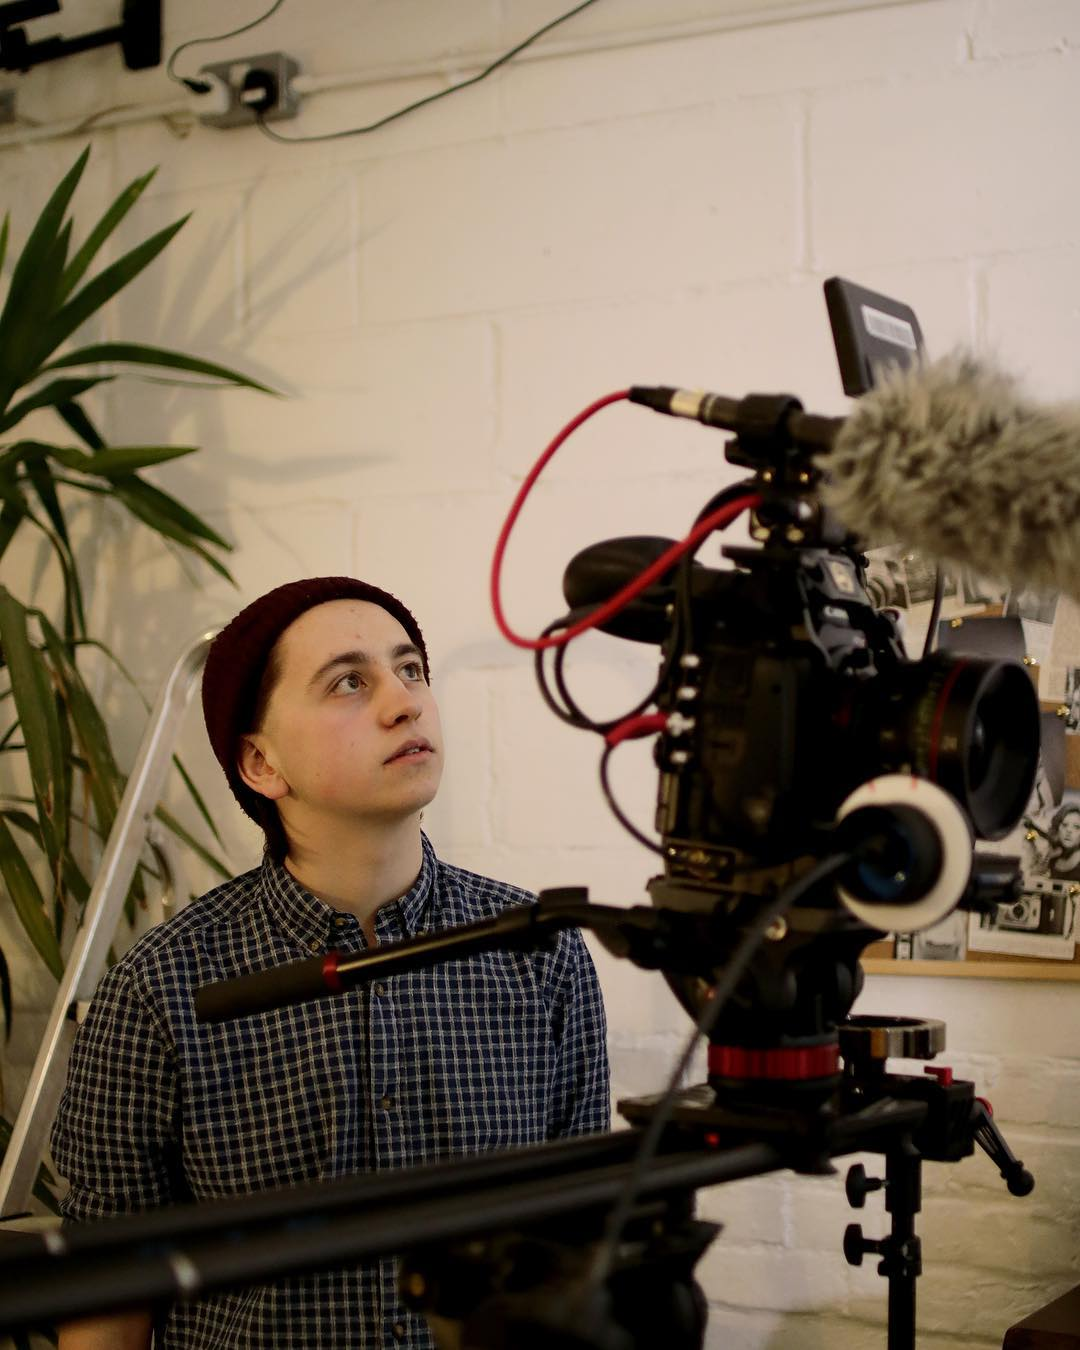 James Coy on the set of POSE. Camera pictured: C500.